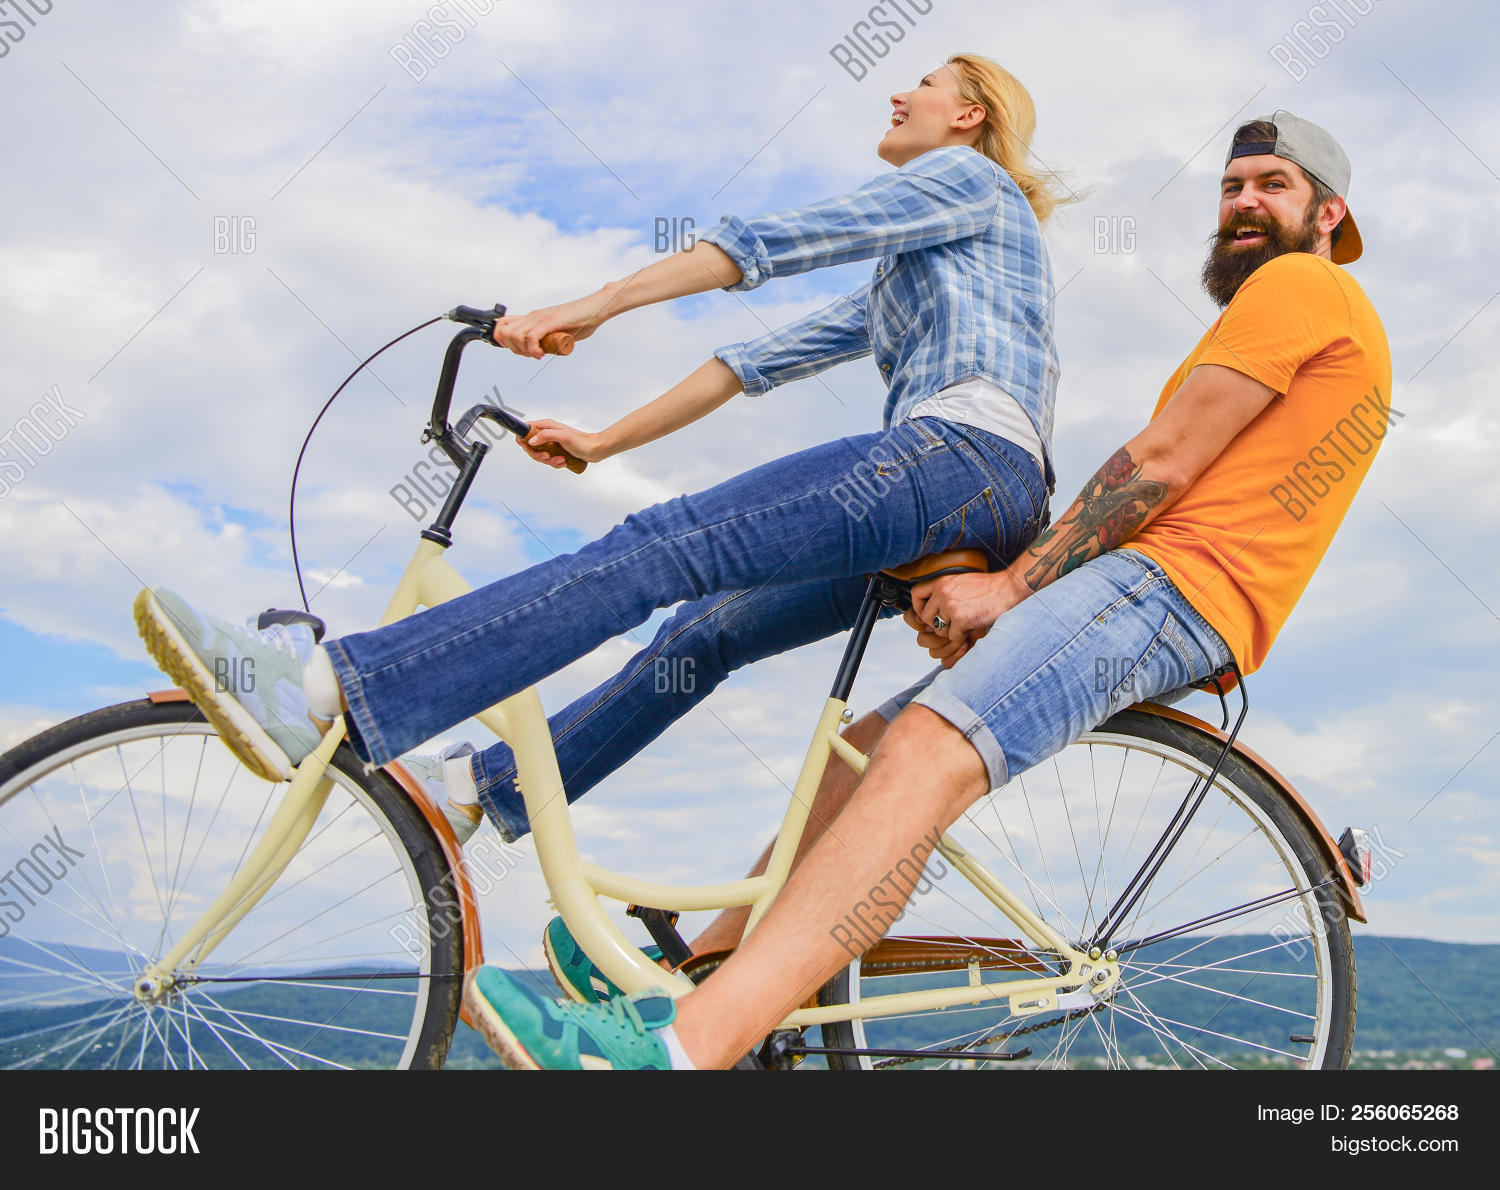 background,bicycle,bike,biking,brutal,casual,caucasian,city,couple,cruiser,cycling,date,discover,family,fun,girl,guy,handlebar,hipster,hire,hobby,ideas,in,journey,lady,leisure,love,man,outdoors,periods,pretty,relax,rent,rental,rest,ride,romantic,short,sky,time,transportation,travel,urban,vacation,weekend,woman,young,youth